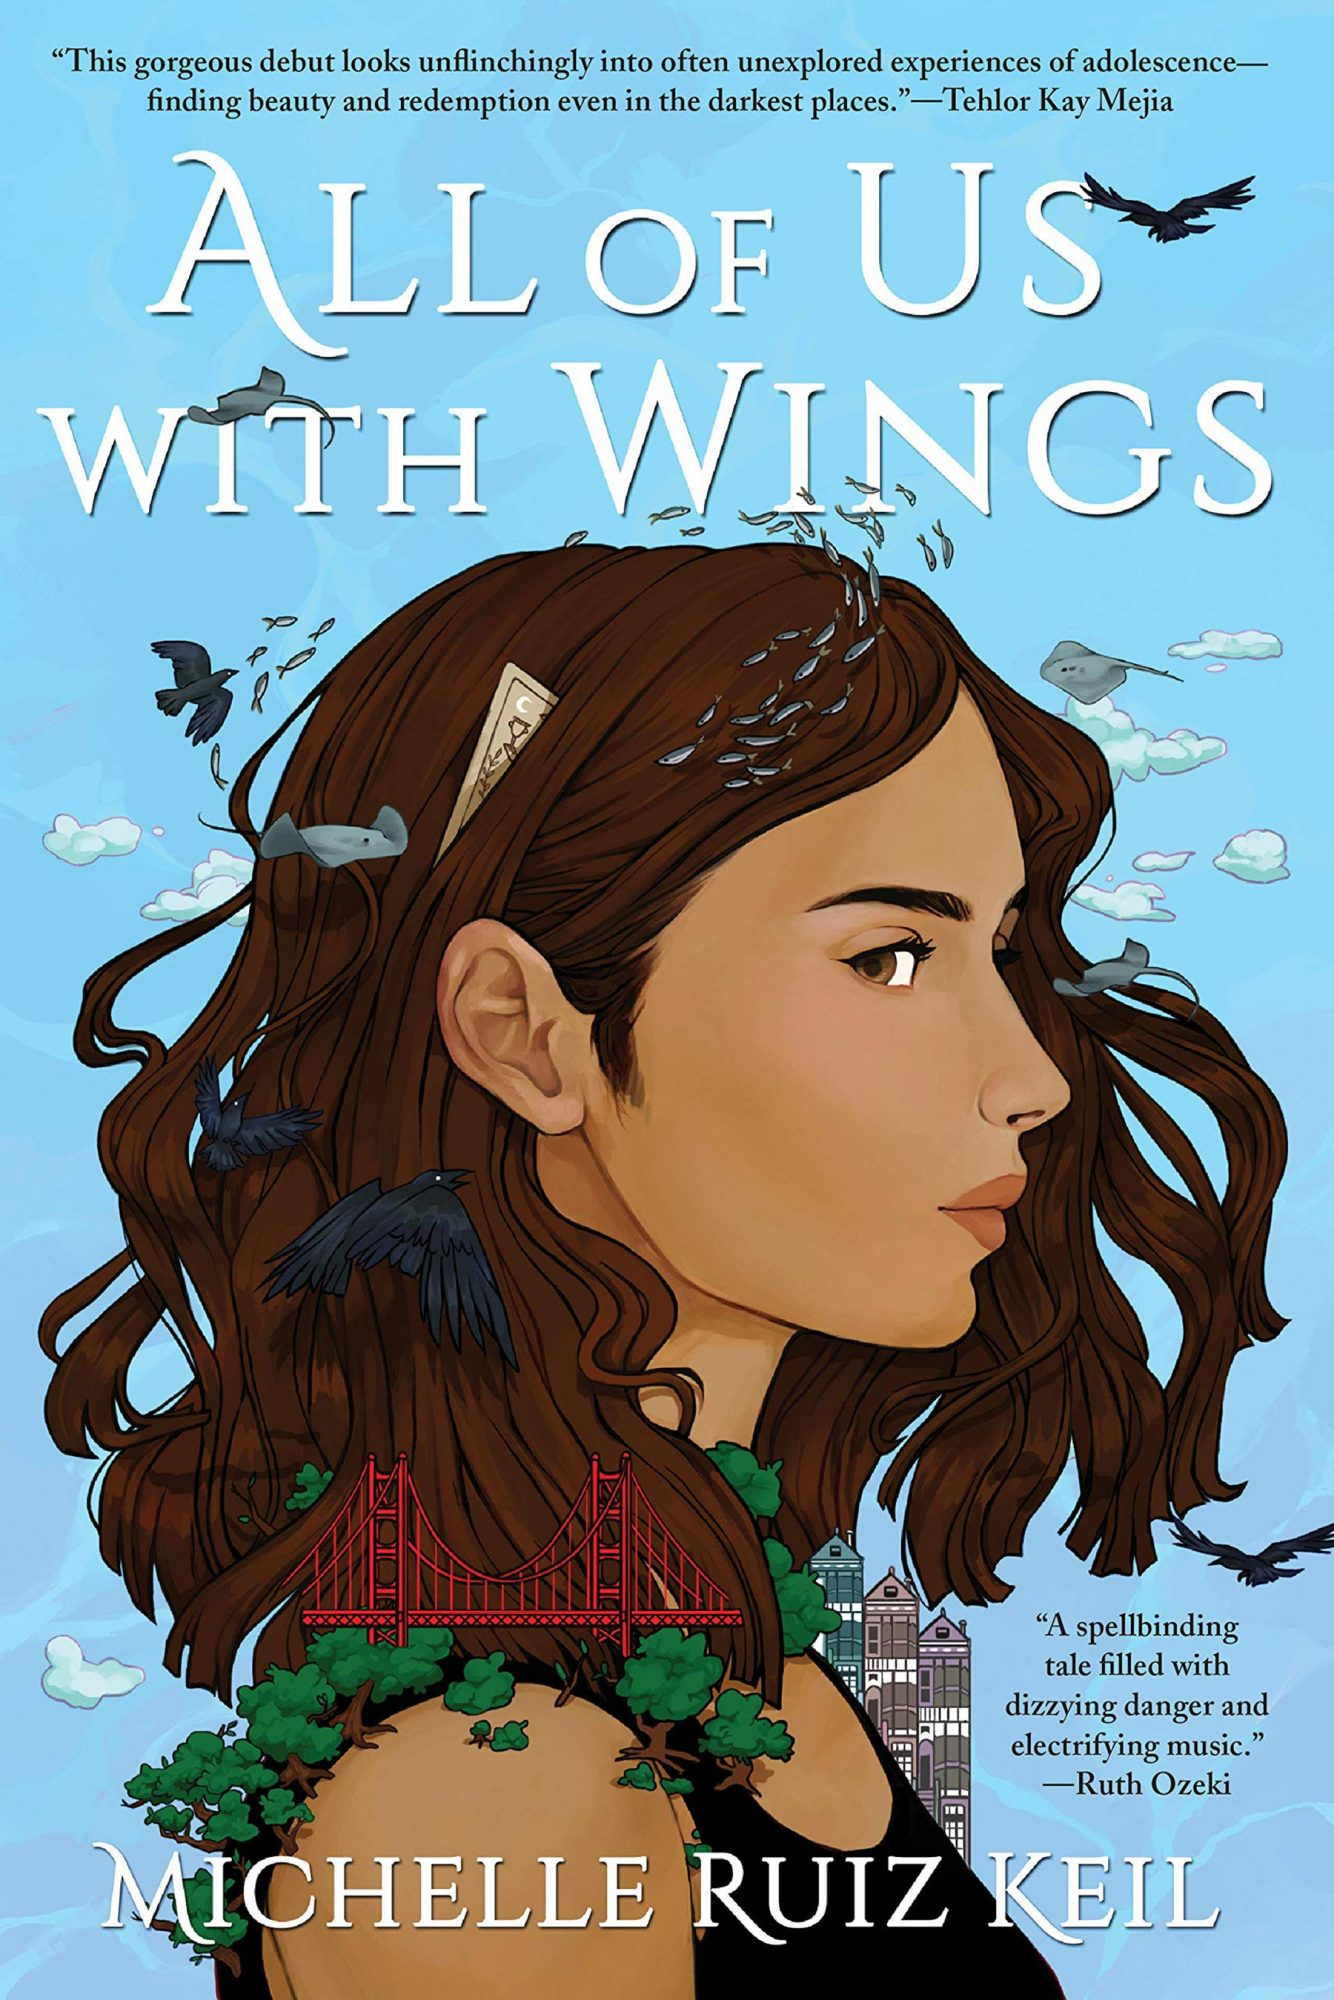 All of Us With Wings, by Michelle Ruiz Keil